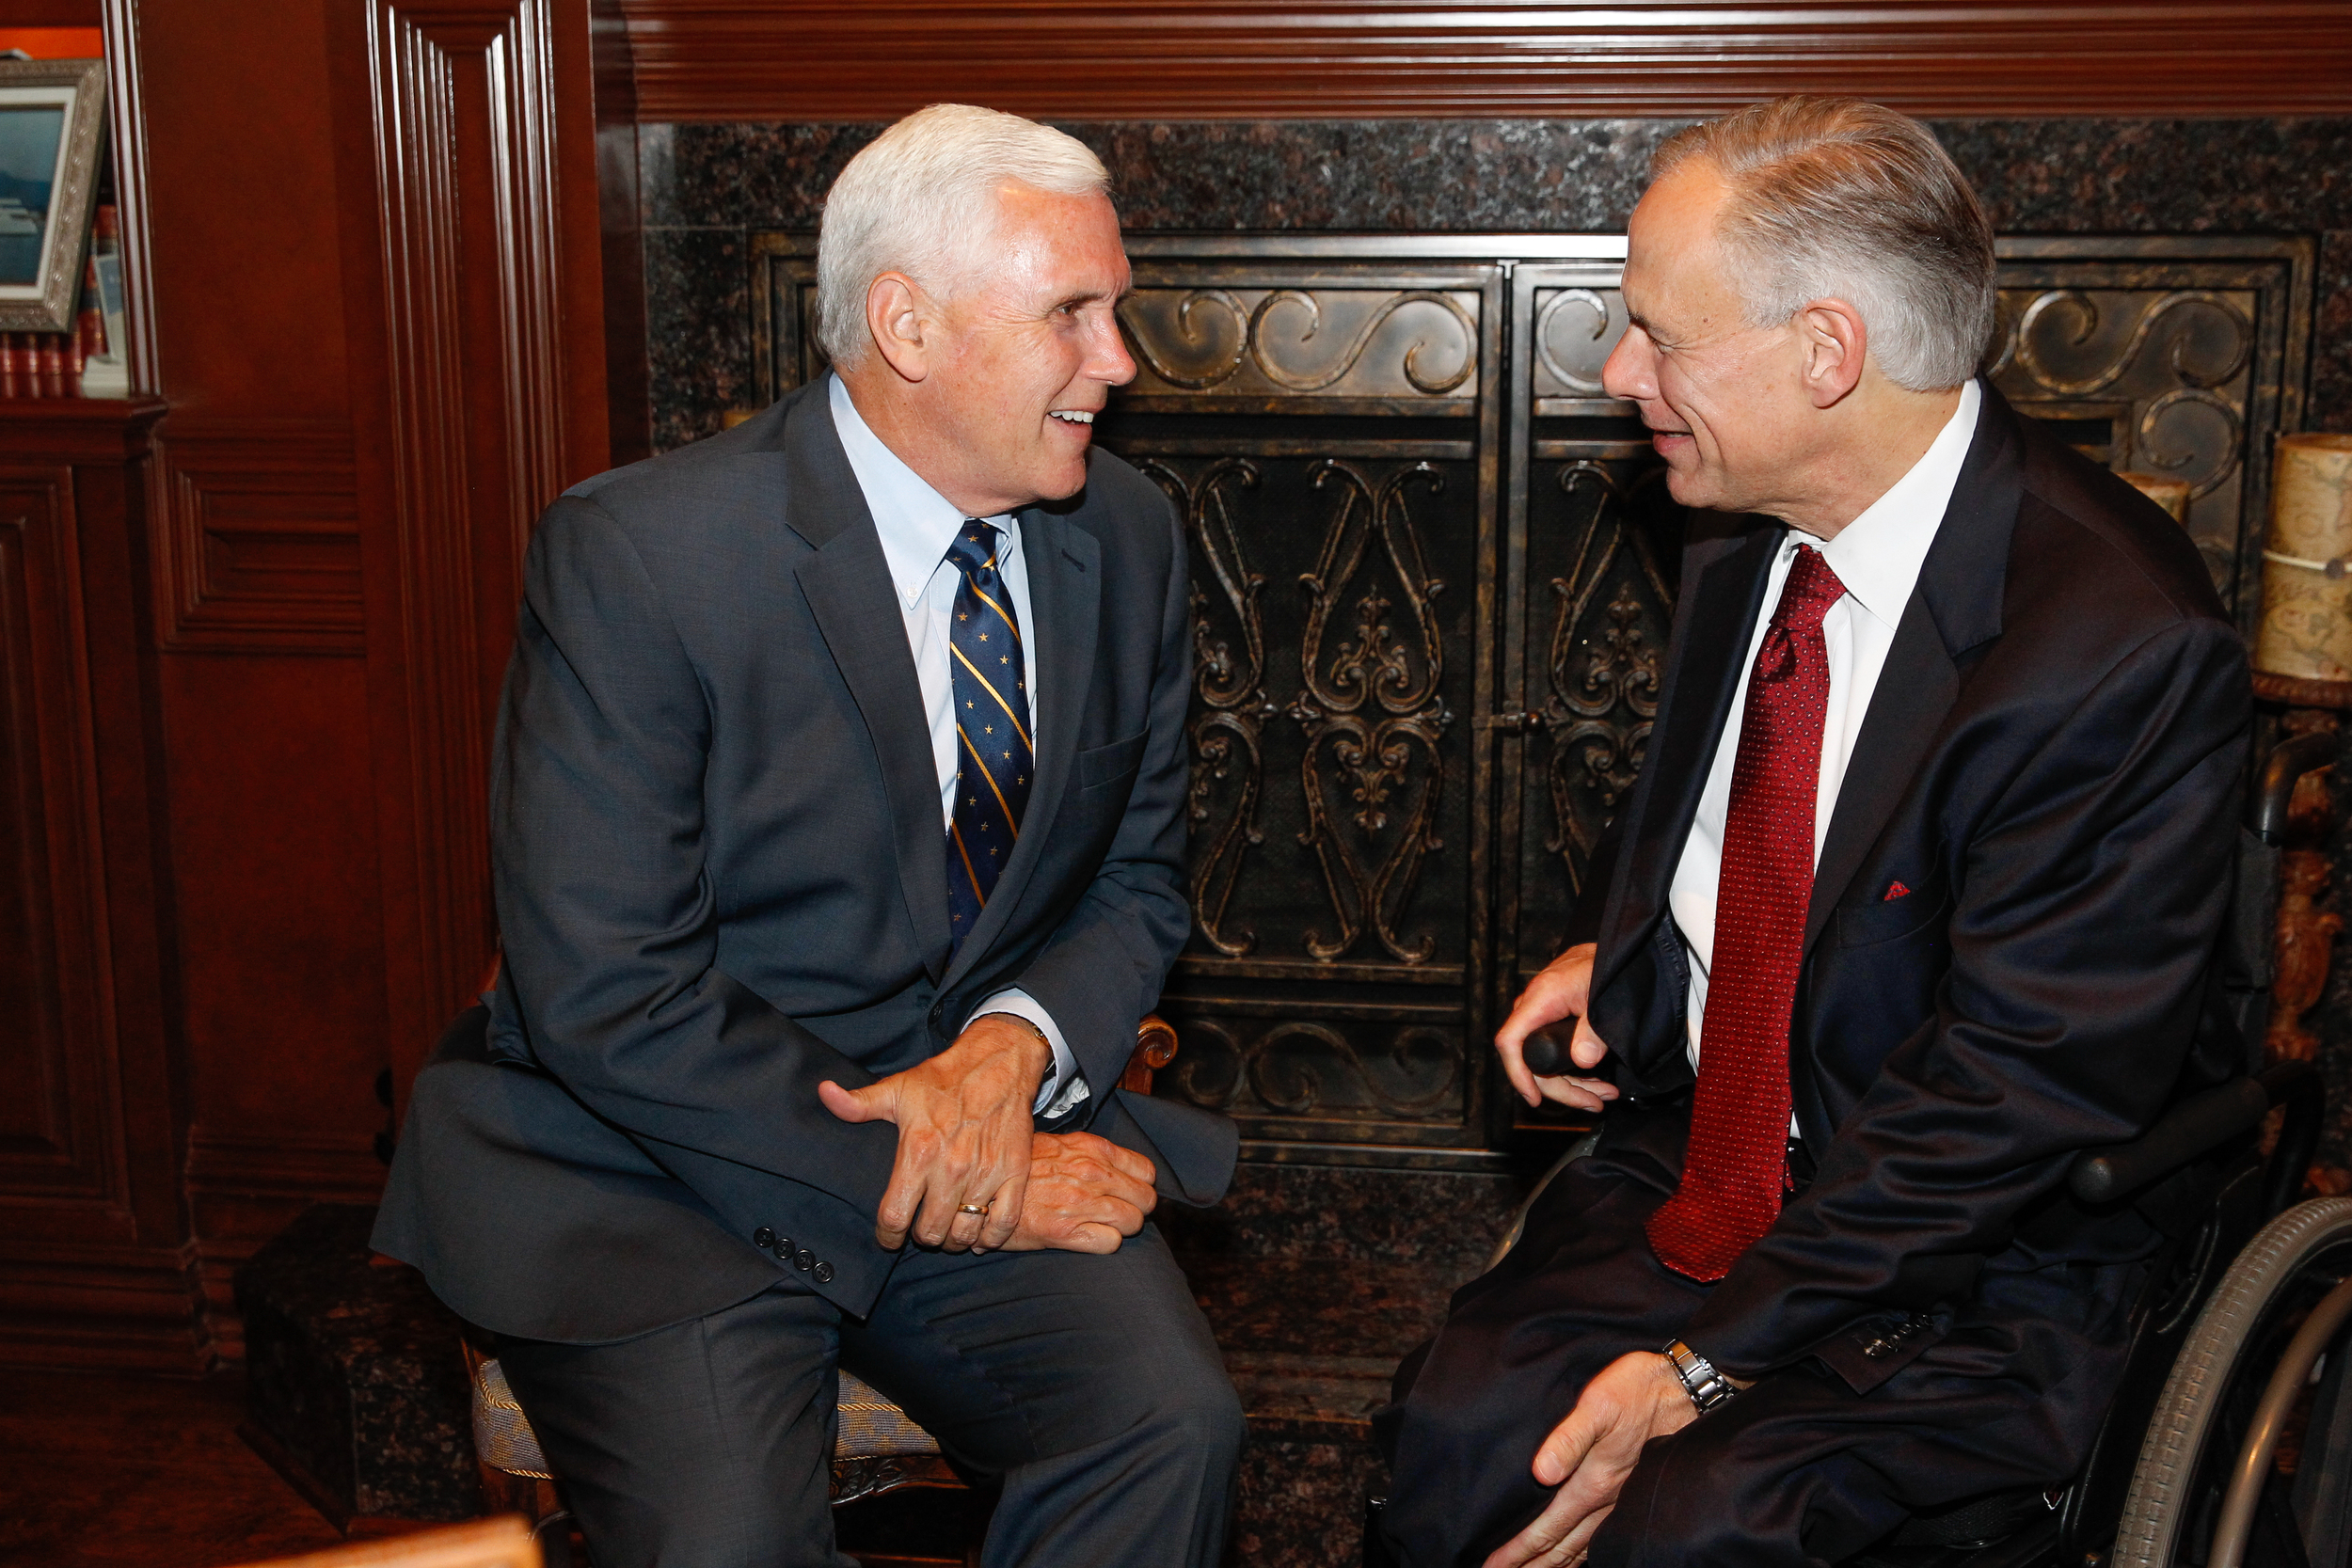 Indiana Governor Mike Pence and Texas Governor Greg Abbott talk at a May, 2016 Dallas reception for Governor Pence.